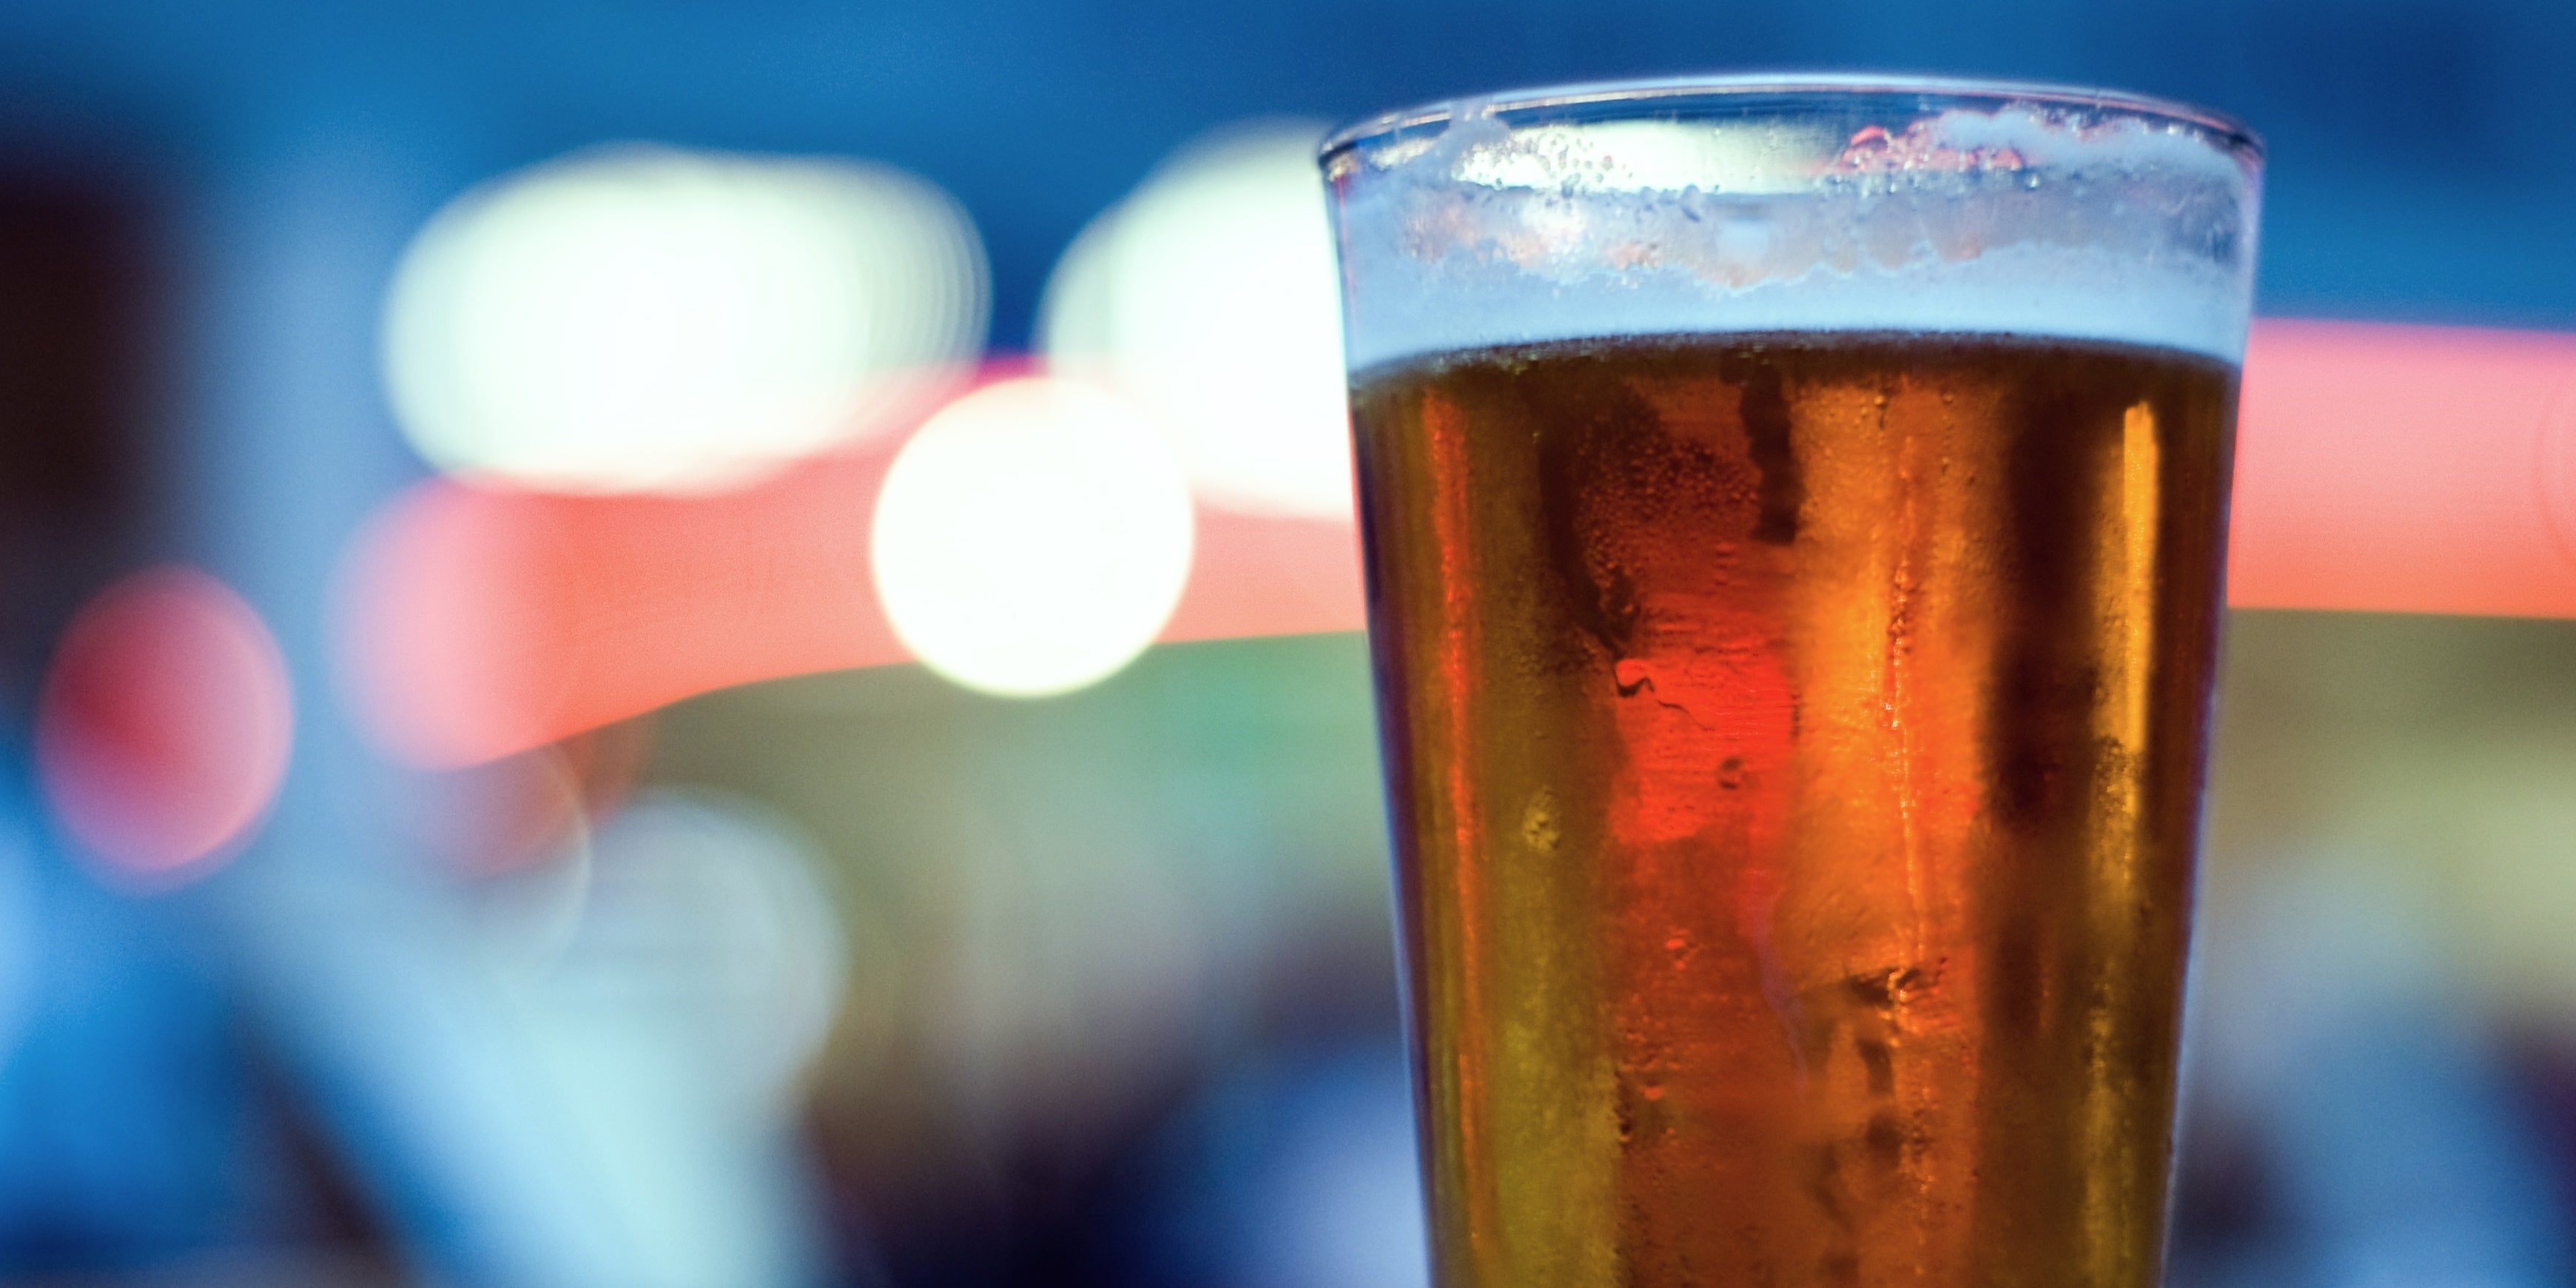 Does a Weekend of Binge-Drinking Make Your Cold Worse?